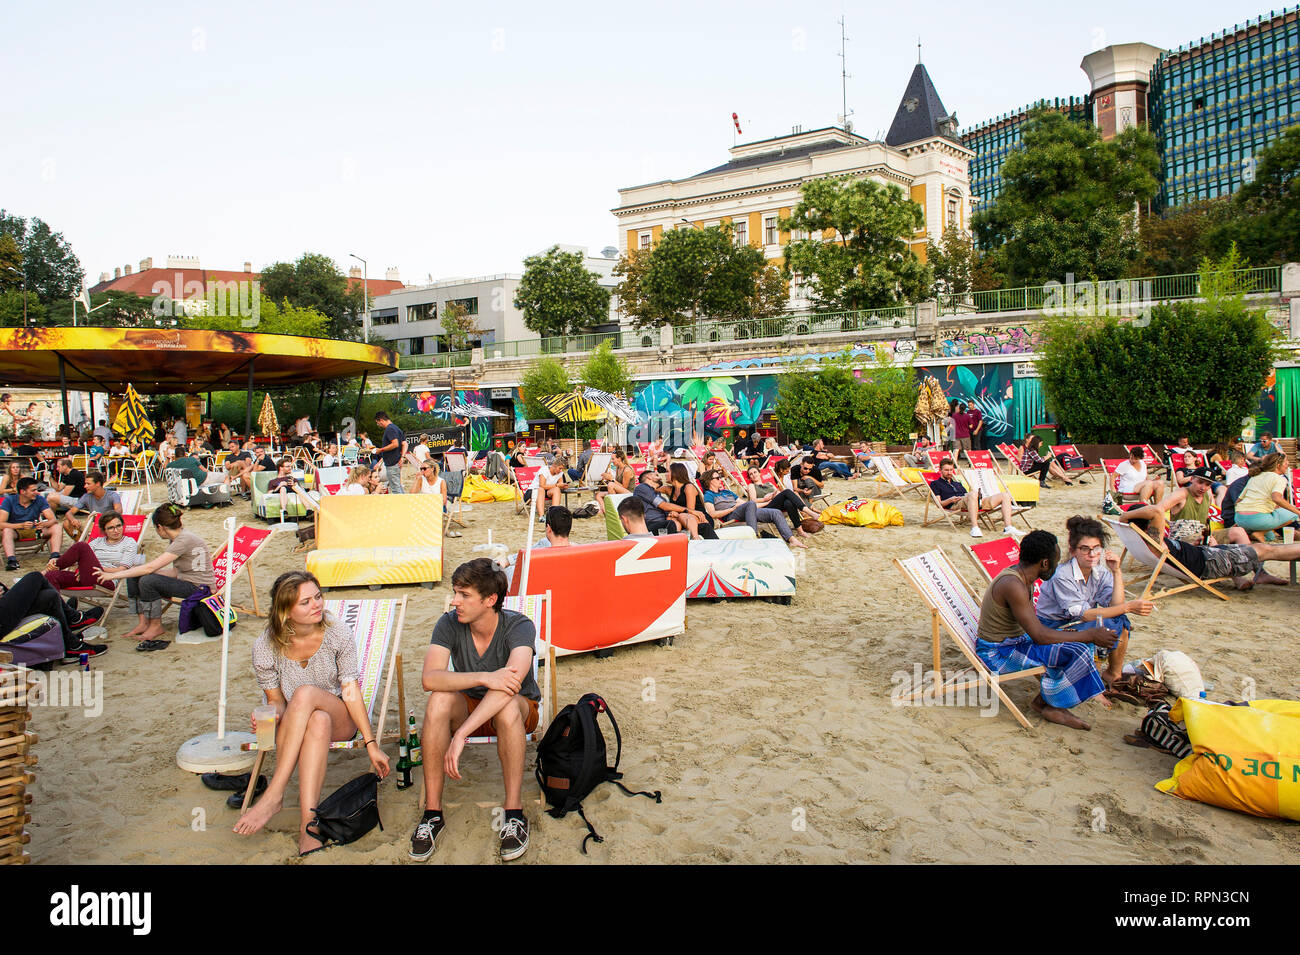 People chilling at Strandbar Herrmann, Vienna's urban beach, open from mid-April to early October, along the Danube canal (Donaukanal) - Stock Image